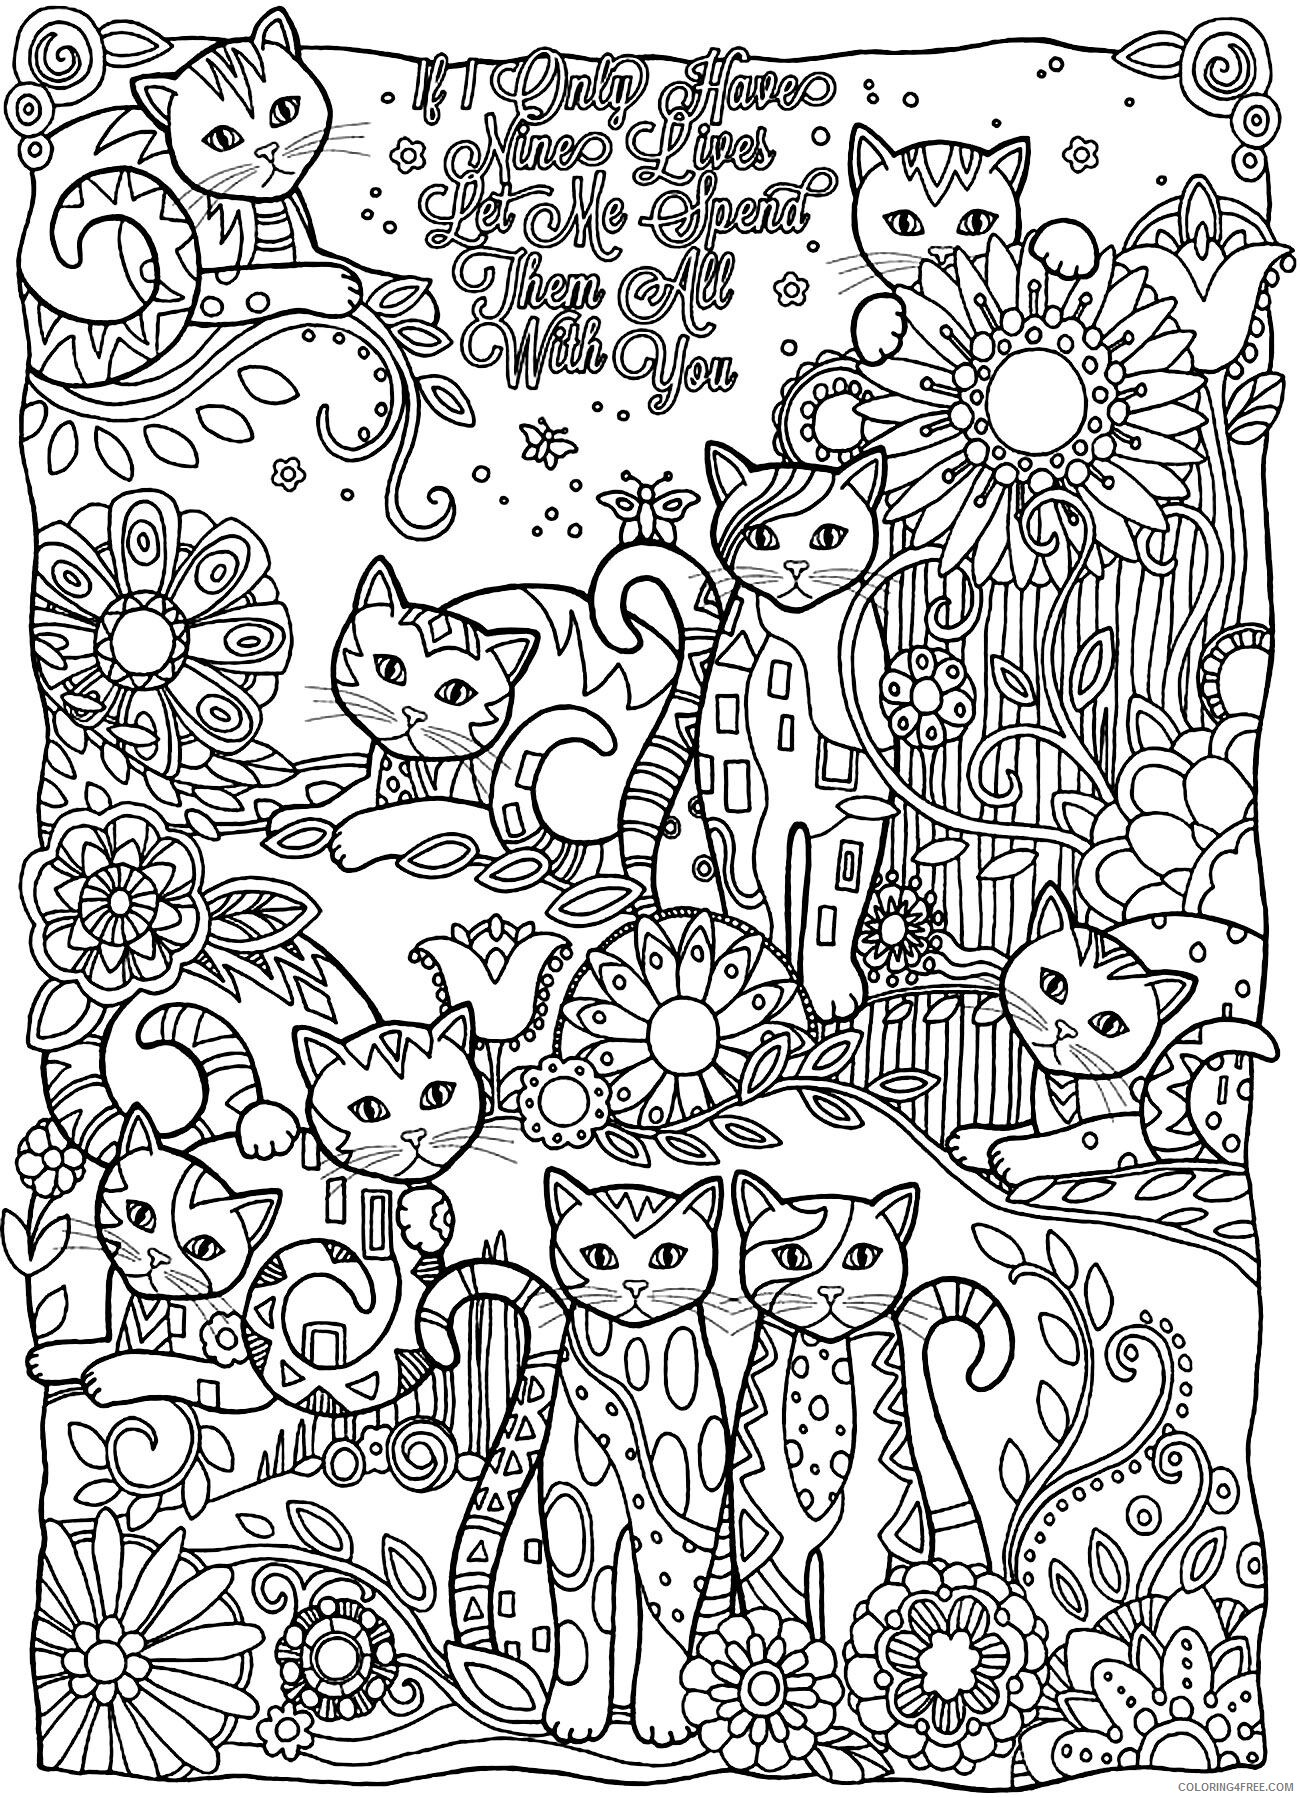 Adult Cat Coloring Pages Cute Cat for Adults Printable 2020 207 Coloring4free